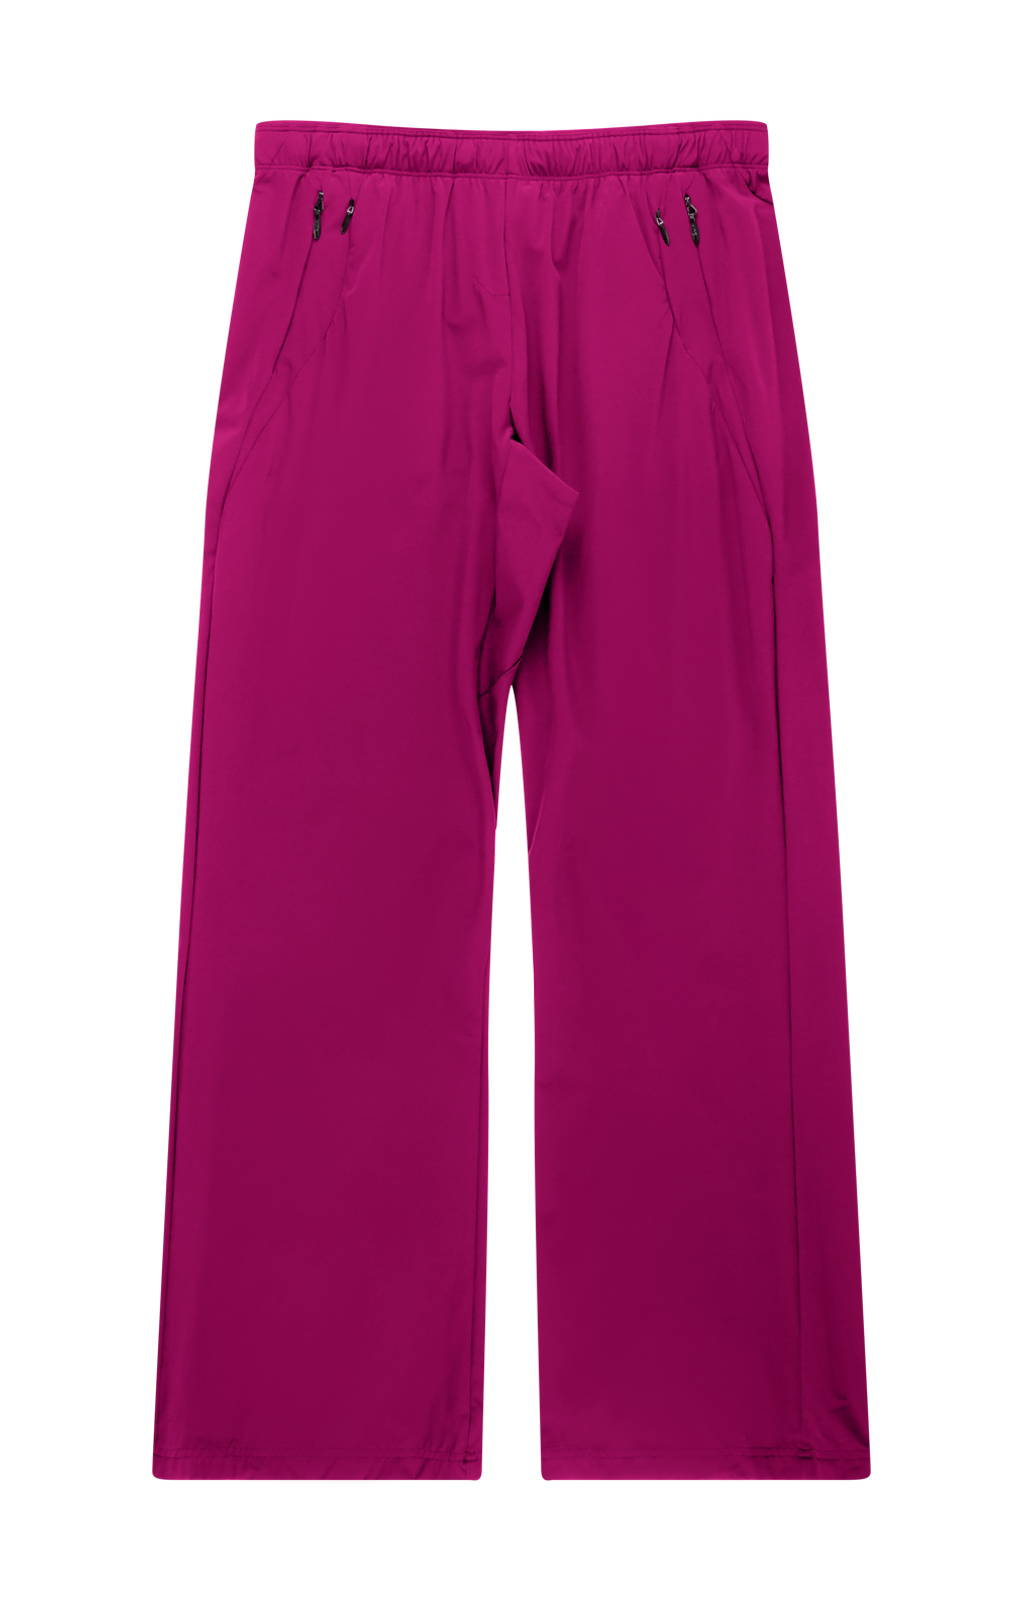 CONSCIOUS - INSANELY COMFY LONG HAUL FLIGHT PANT DARK RED